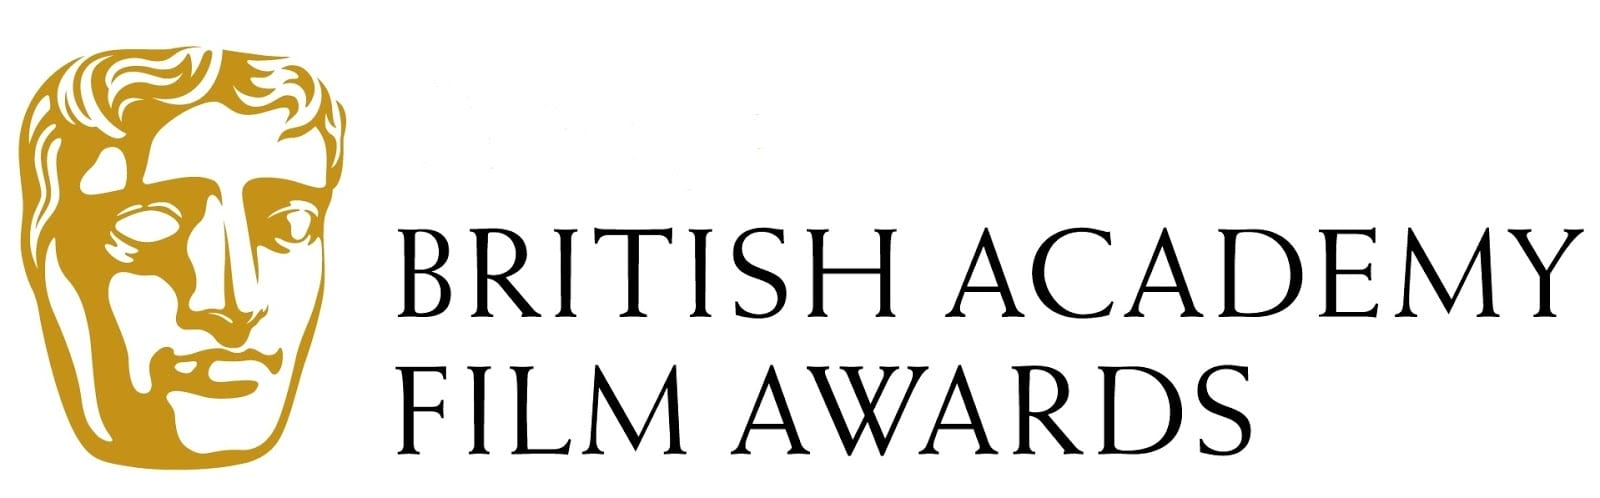 66th British Academy Film Awards M-Net Premiere M-Net 11 February